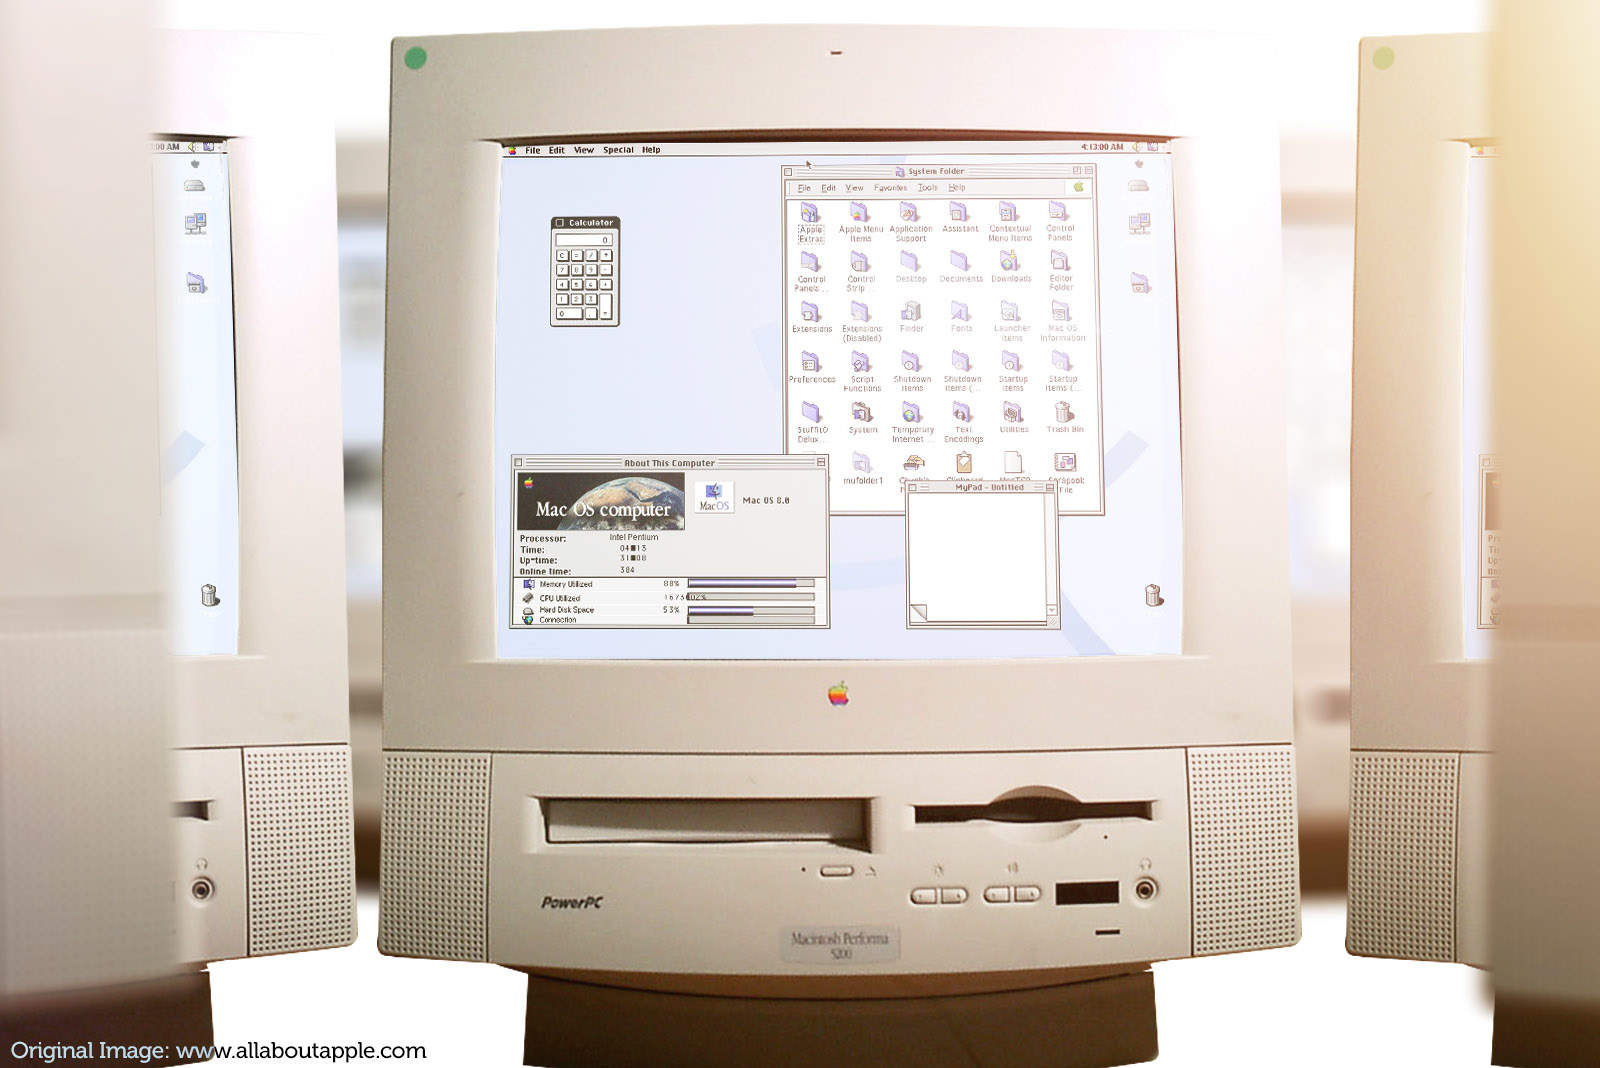 Mac OS 8 gave Apple a much-needed revenue boost.